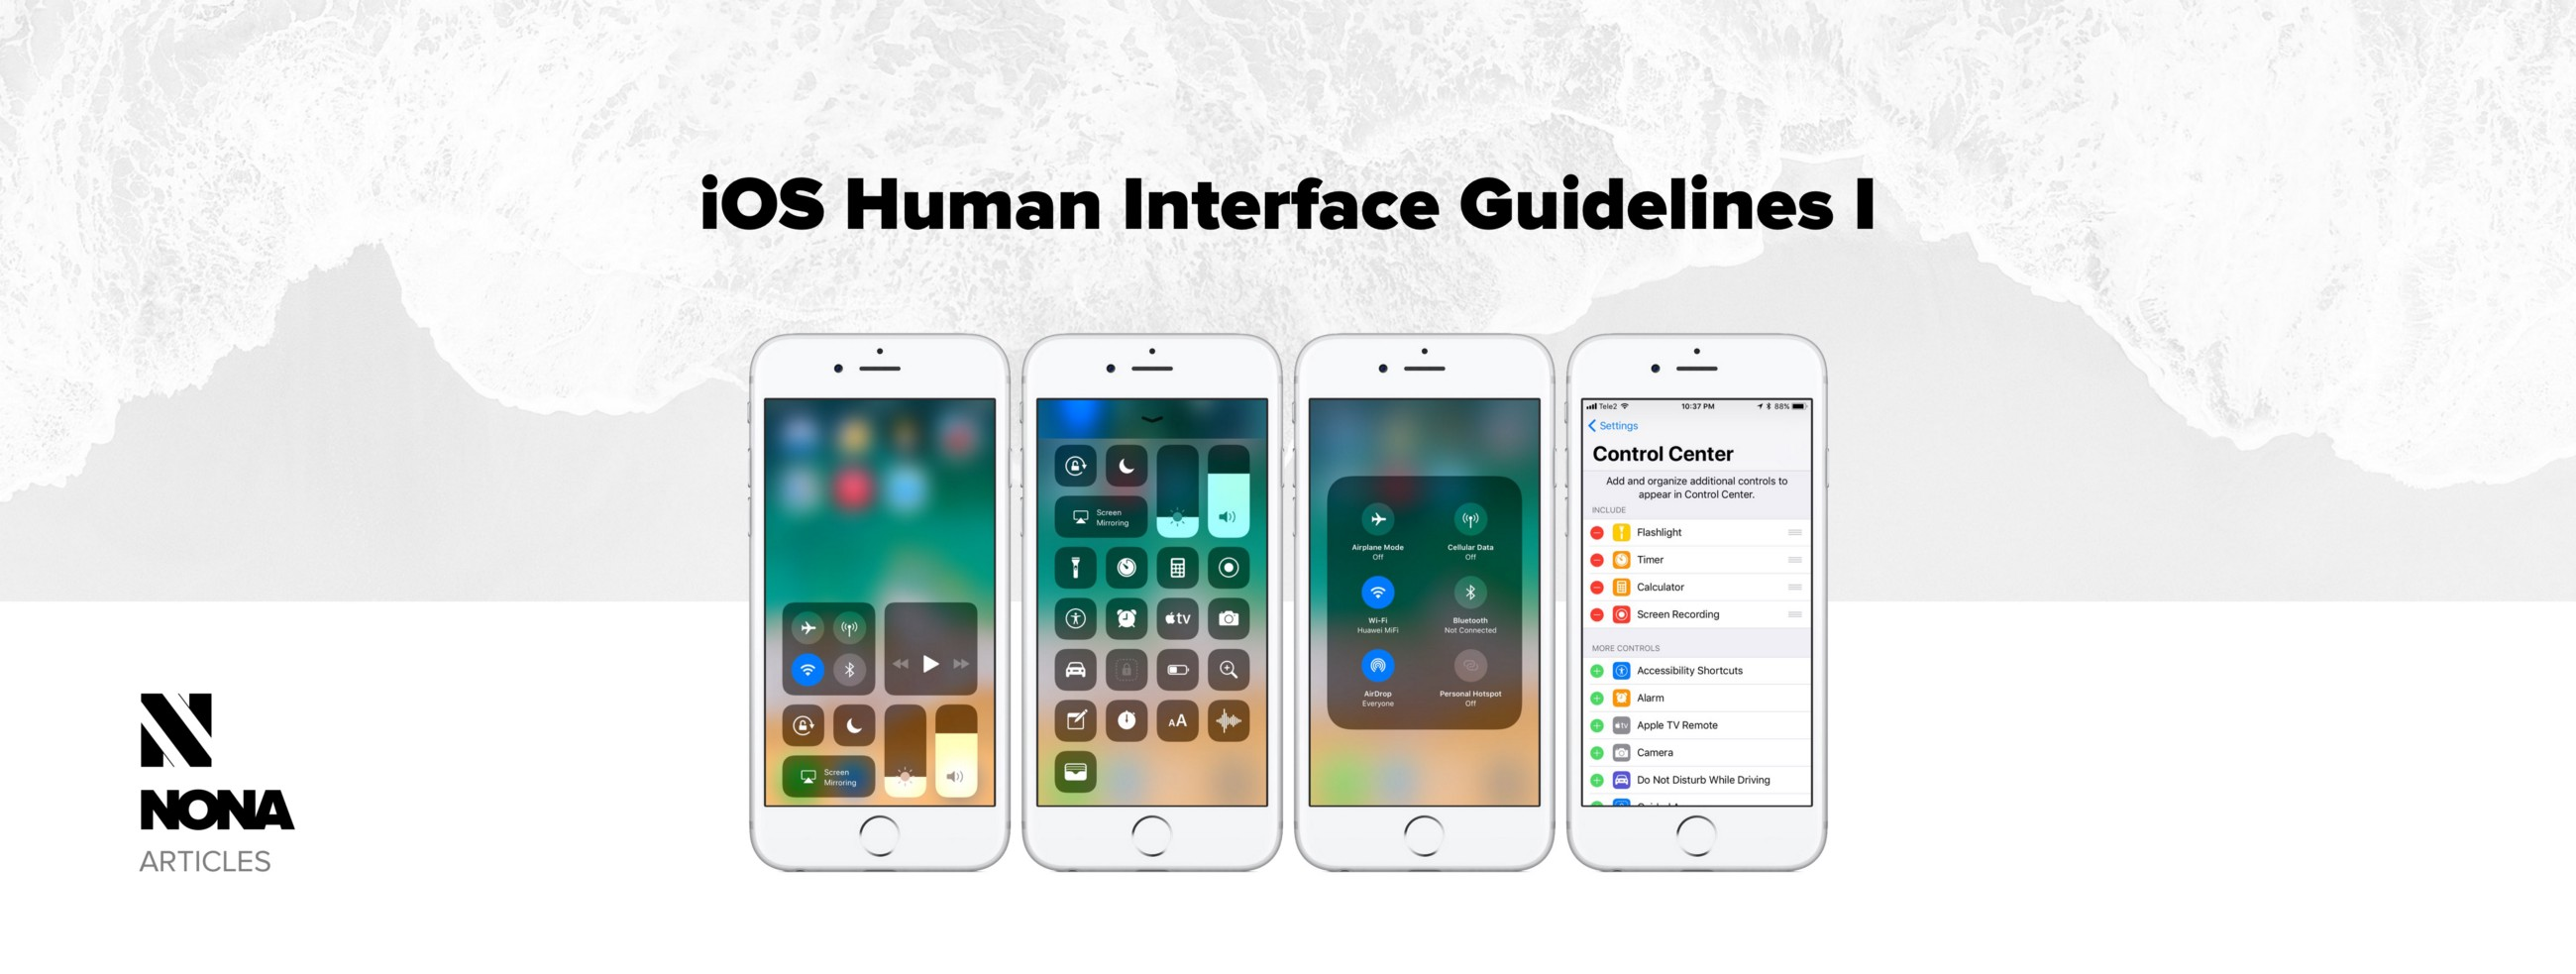 Human interface guidelines ios pdf 7